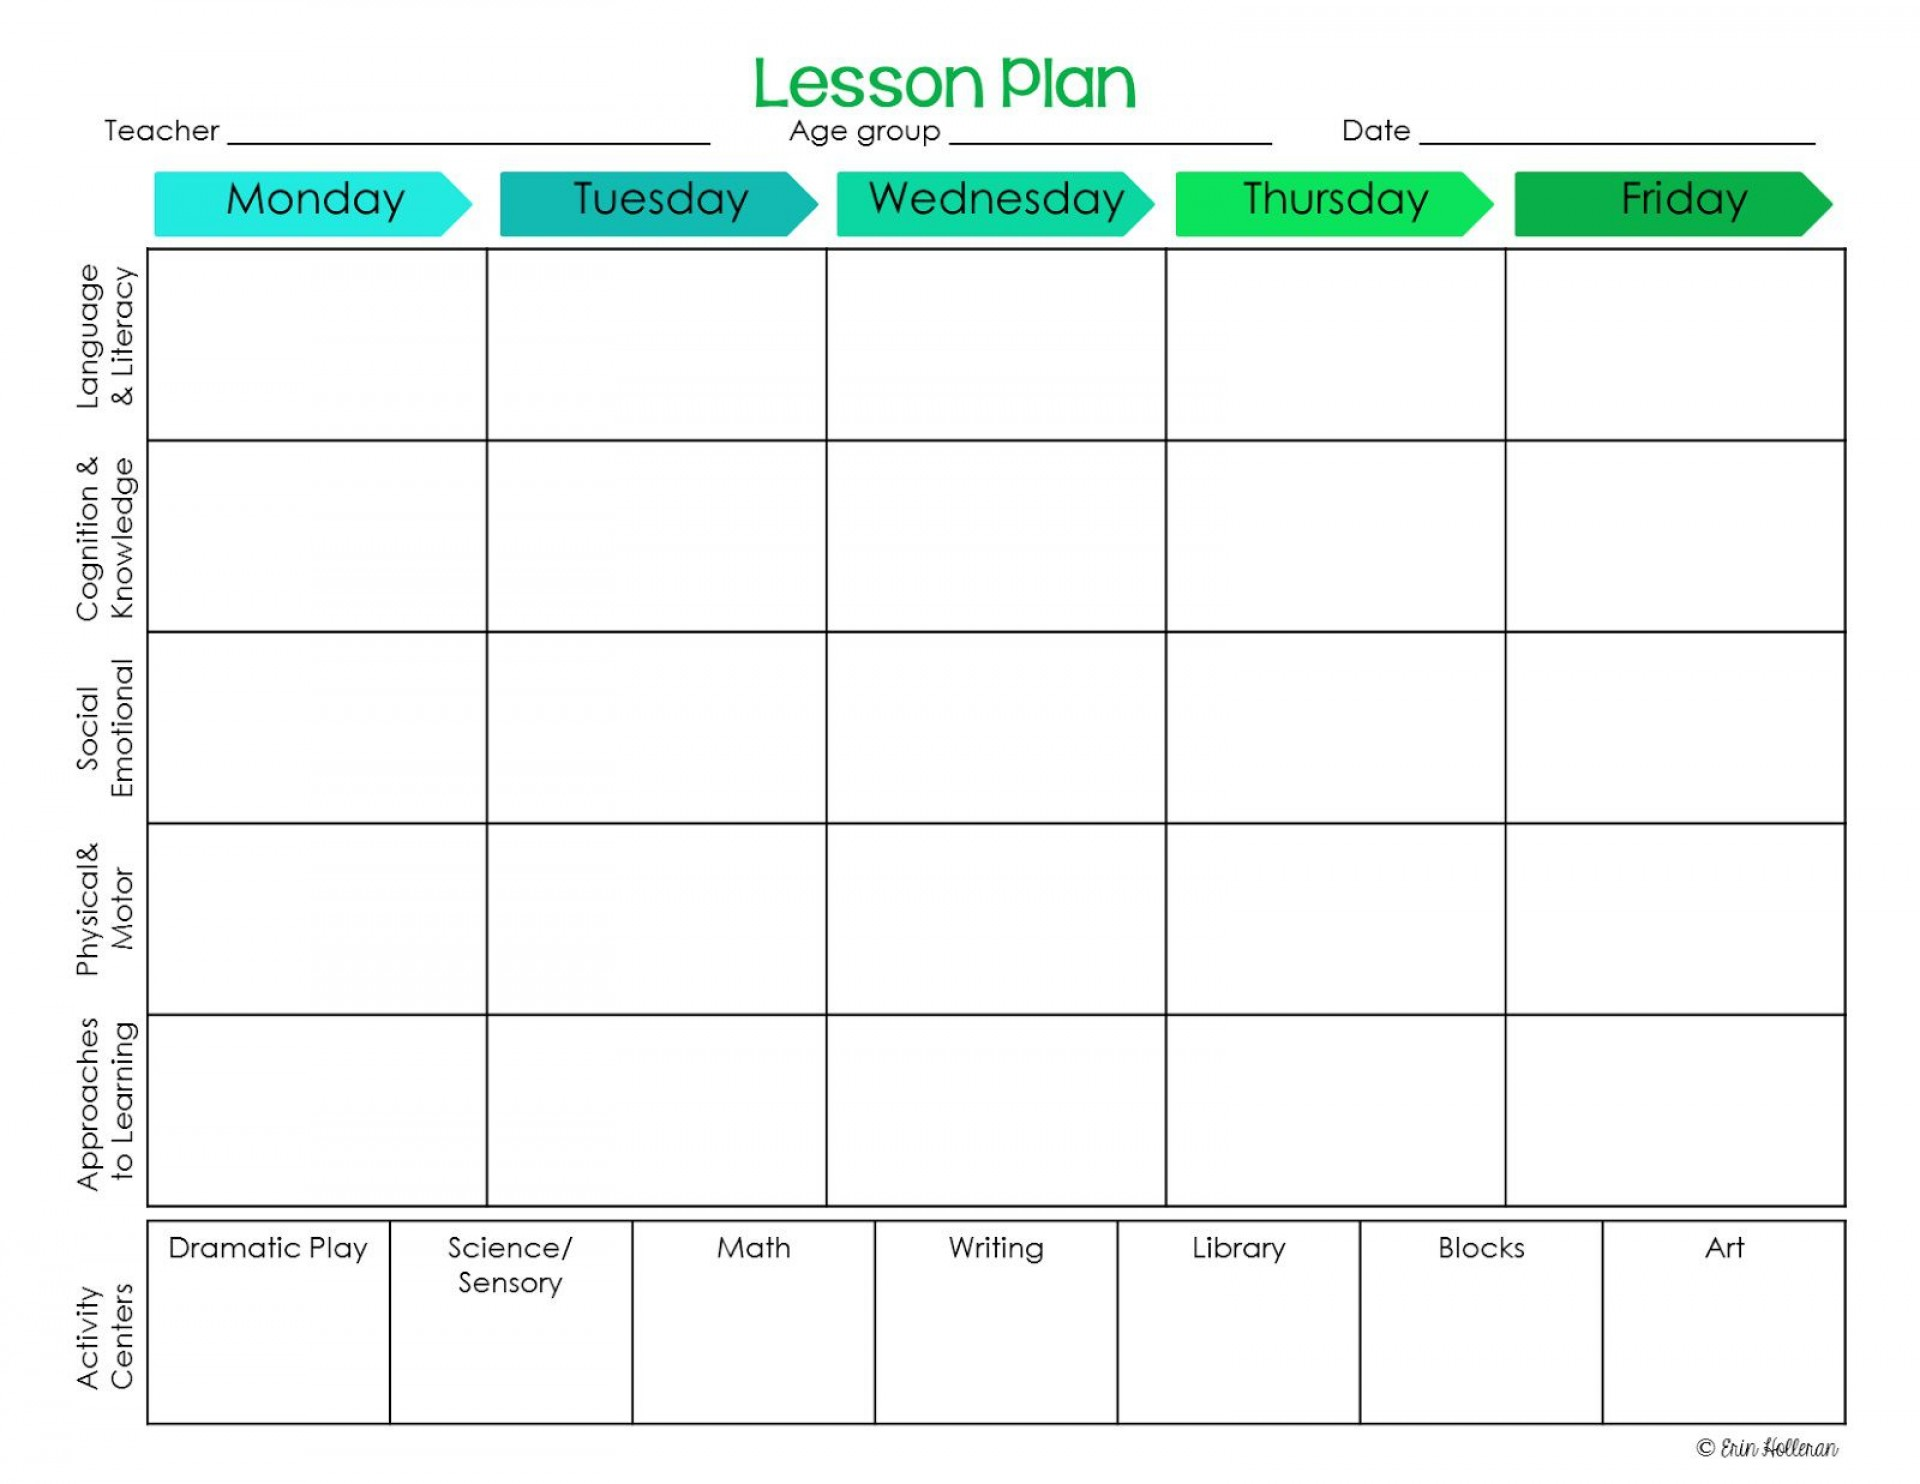 000 Awesome Preschool Lesson Plan Template Example  Free Printable Creative Curriculum Doc1920